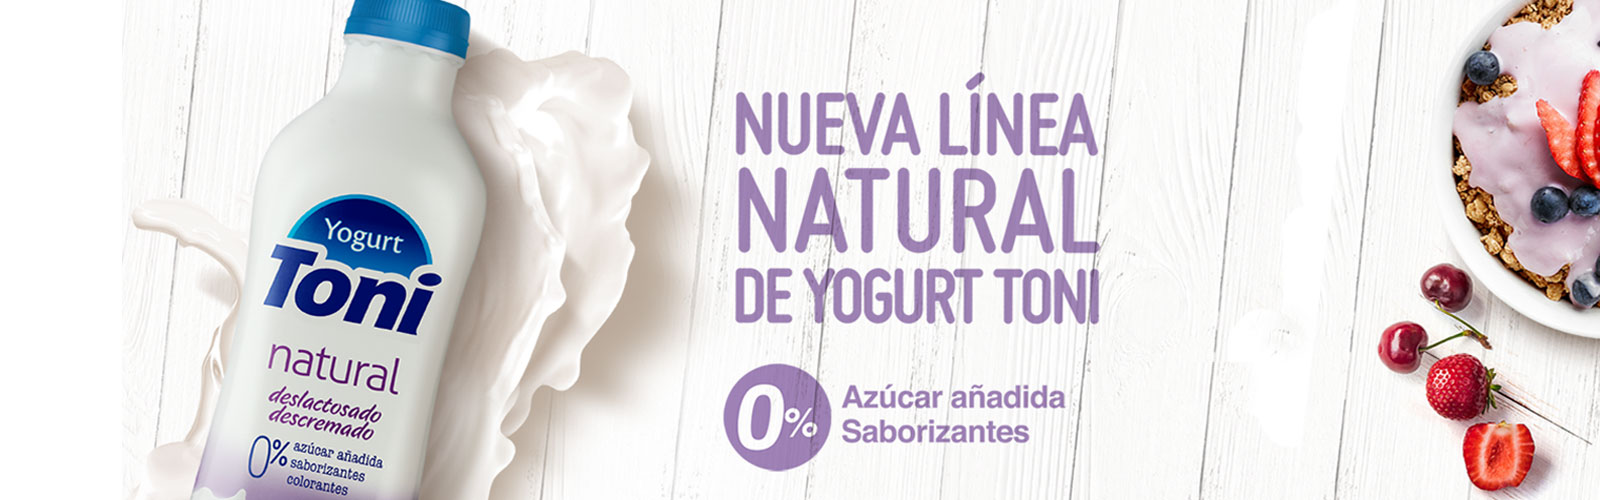 Yogurt Toni Natural